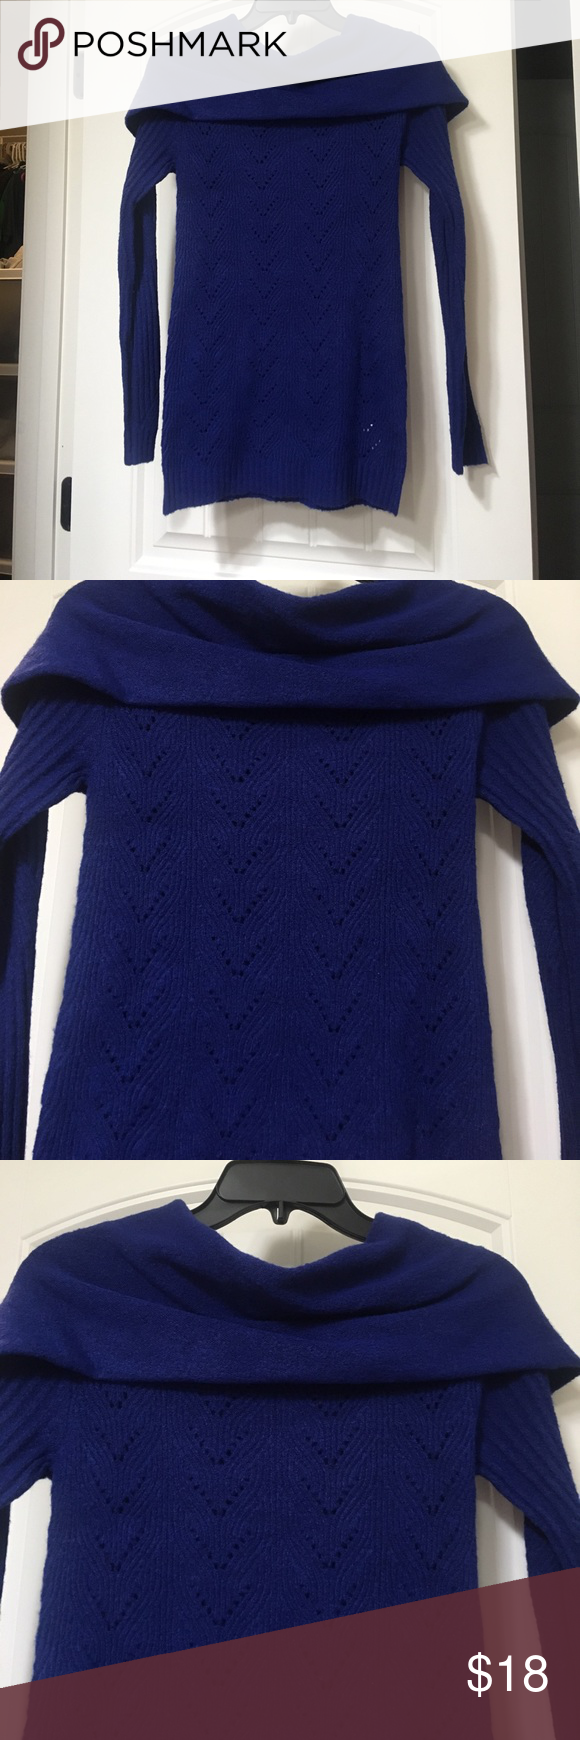 Cowl neck sweater NWT | Cowl neck and Jessica simpsons